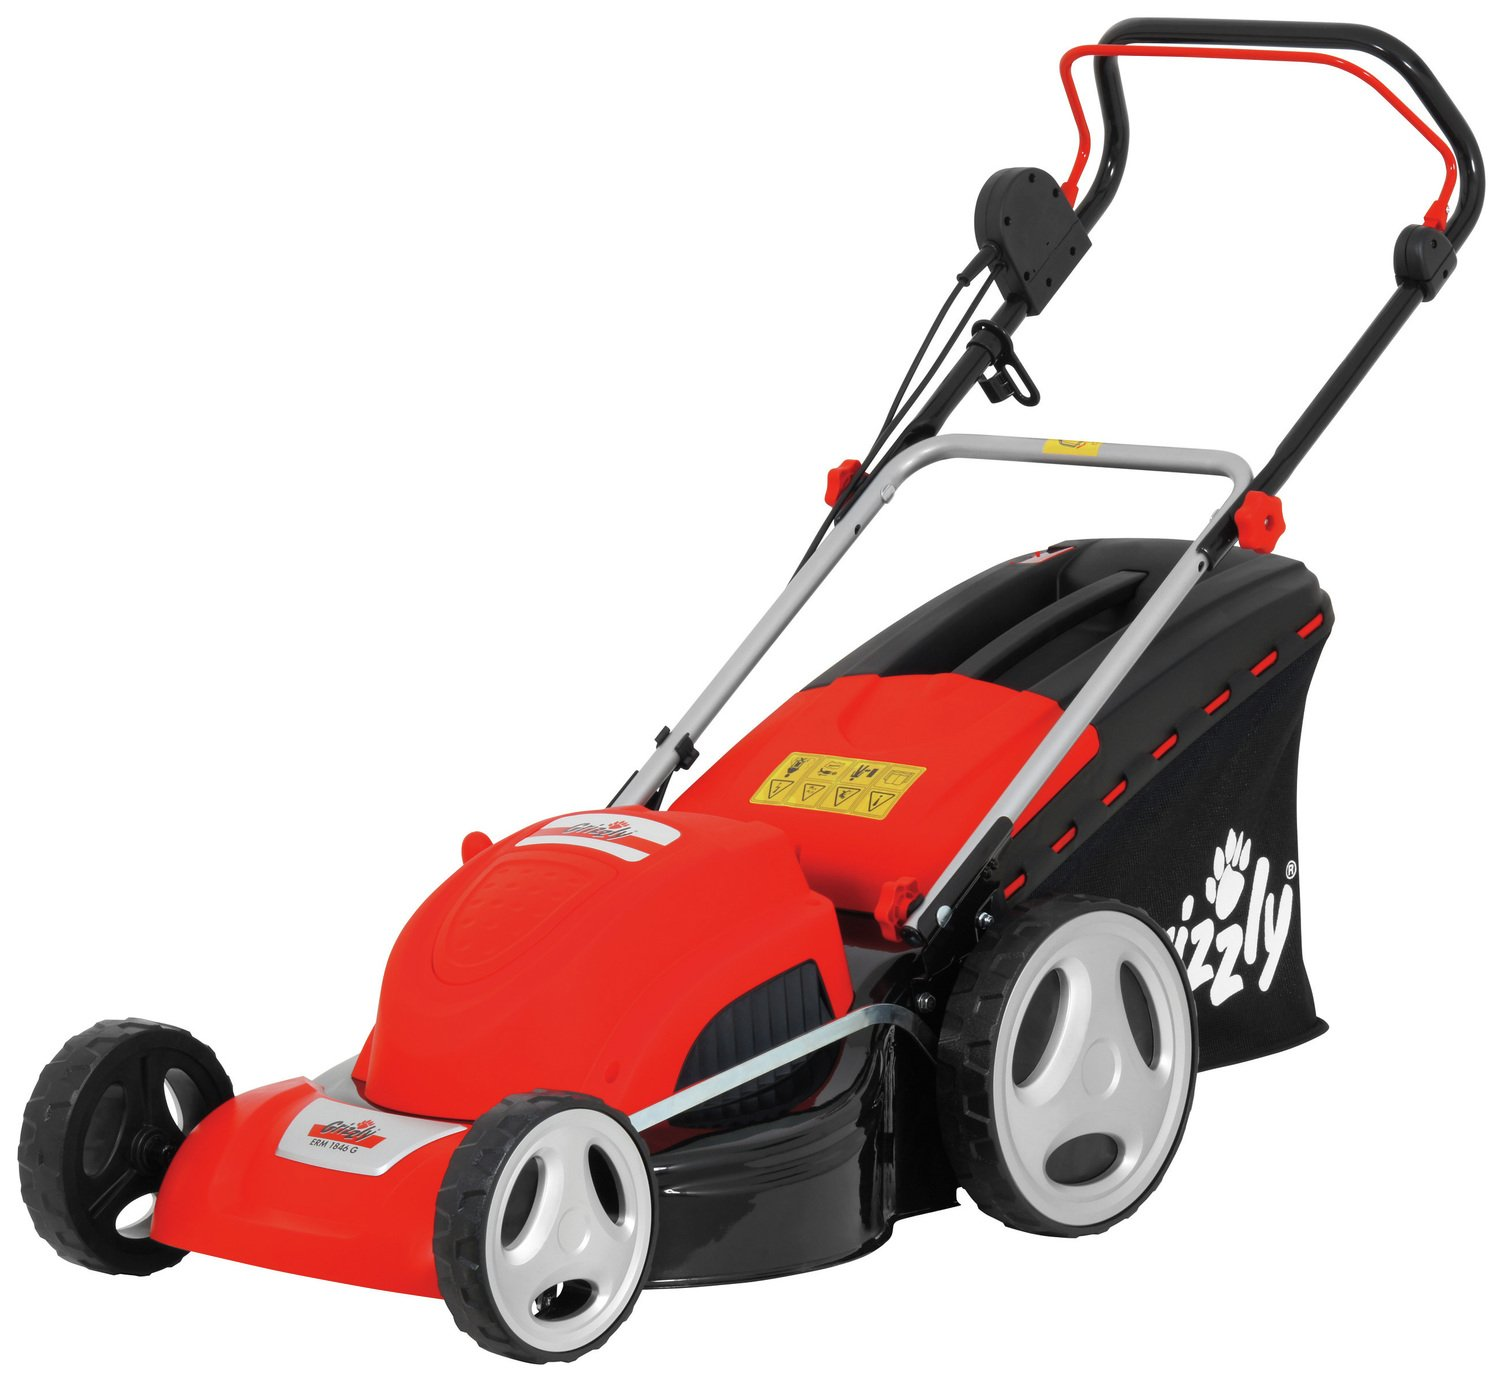 Image of Grizzly Tools Electric Rotary Induction Lawnmower - 1800W